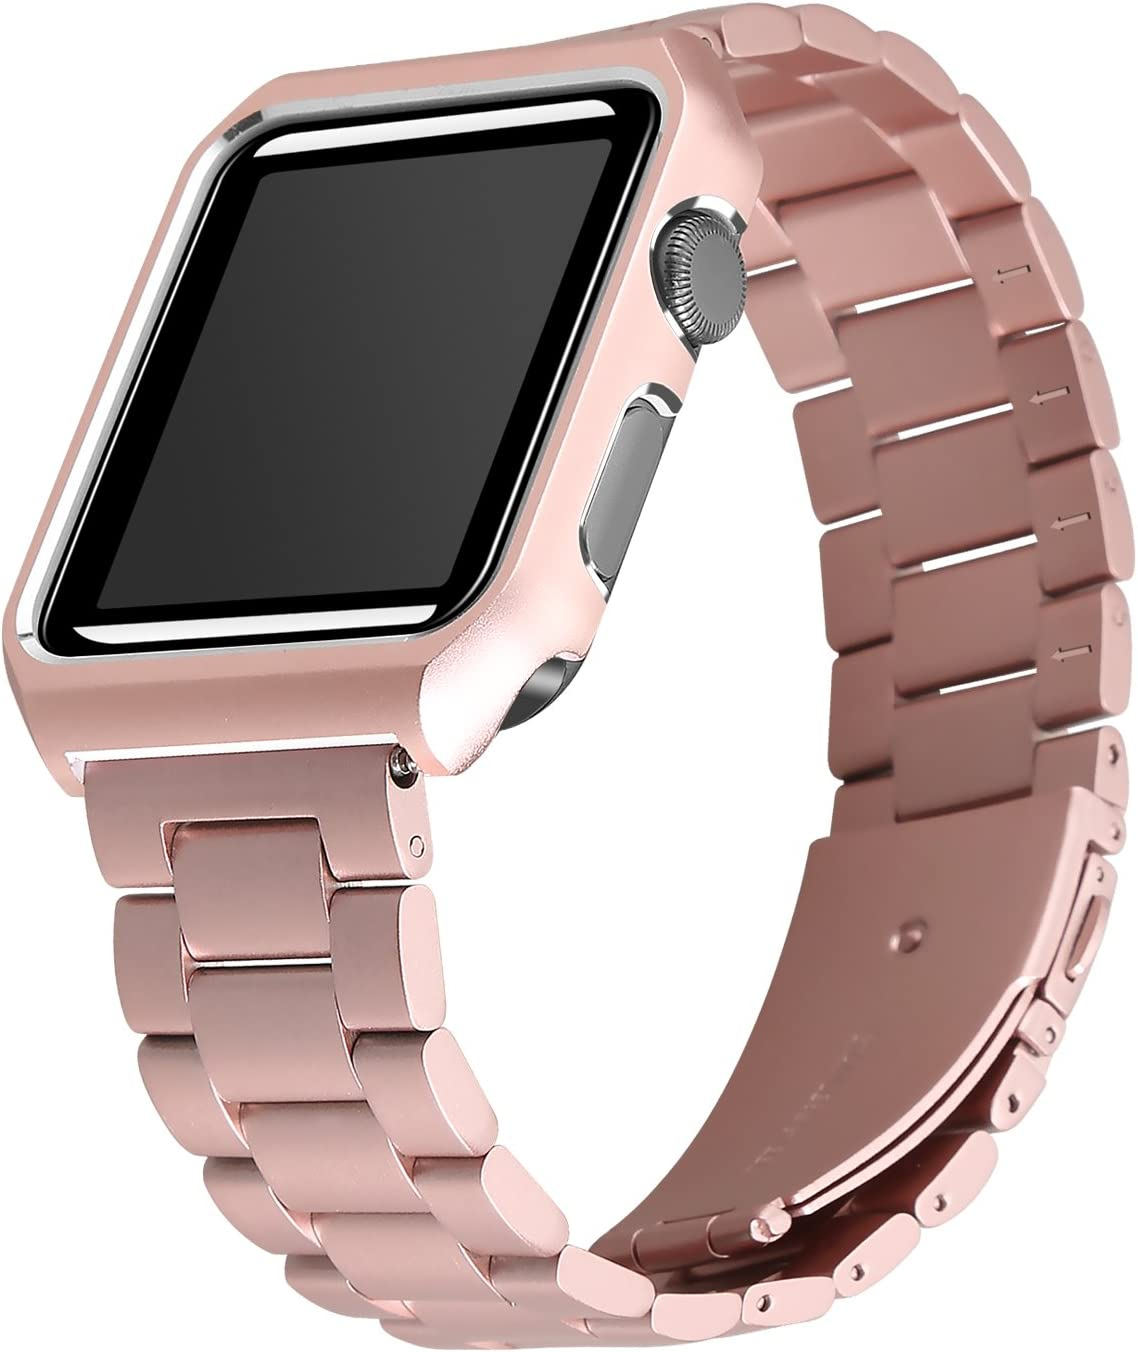 Maxjoy Compatible with Apple Watch Bands 38mm with Case, Adjustable Band Stainless Steel Straps with Magnetic Closure Clasp+Protective Case Replacement for Apple Watch Series 3/2/1, Rose Gold